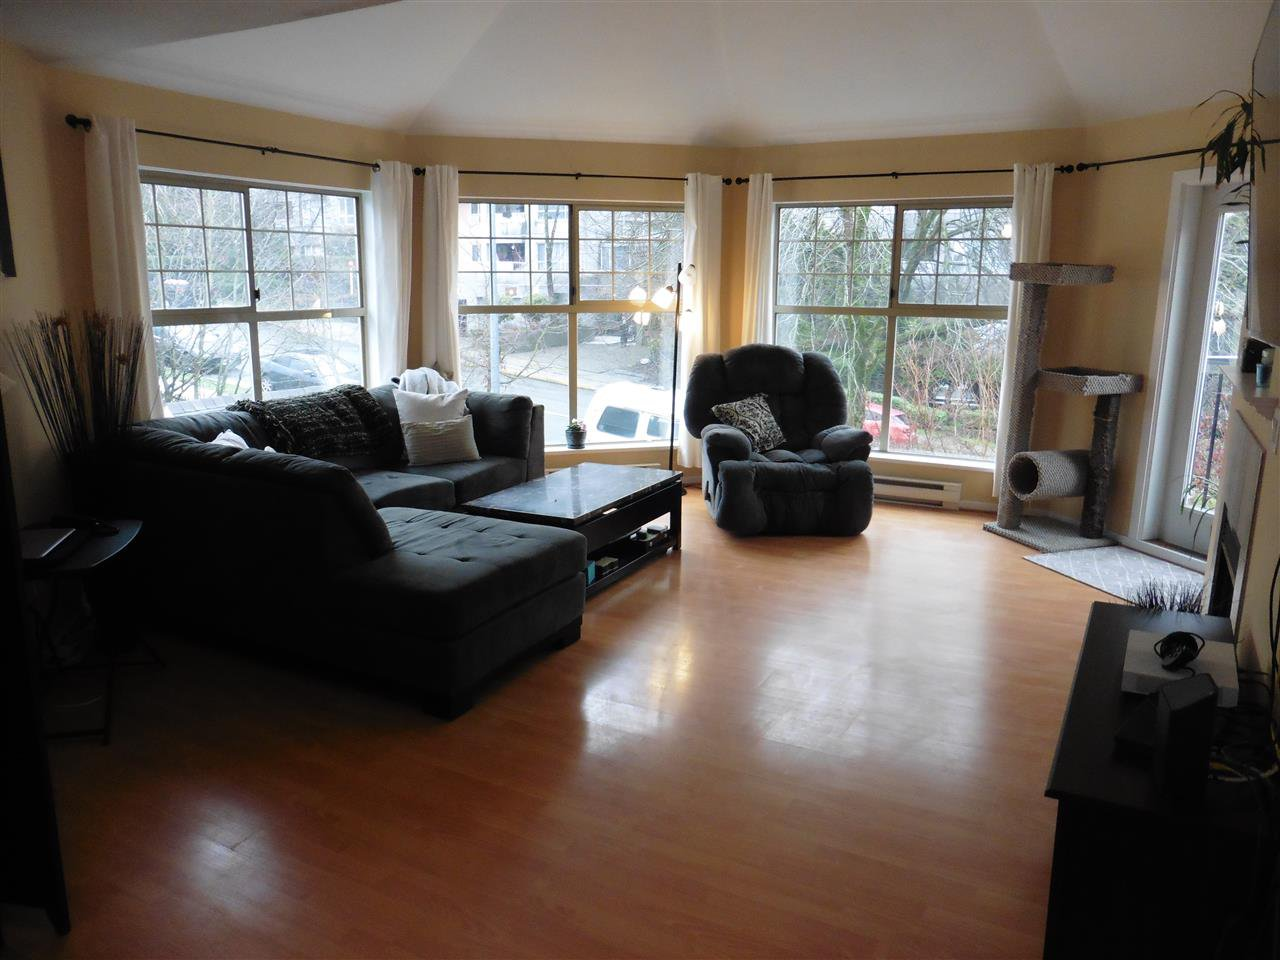 """Photo 2: Photos: 506 210 ELEVENTH Street in New Westminster: Uptown NW Condo for sale in """"DISCOVERY REACH"""" : MLS®# R2434040"""